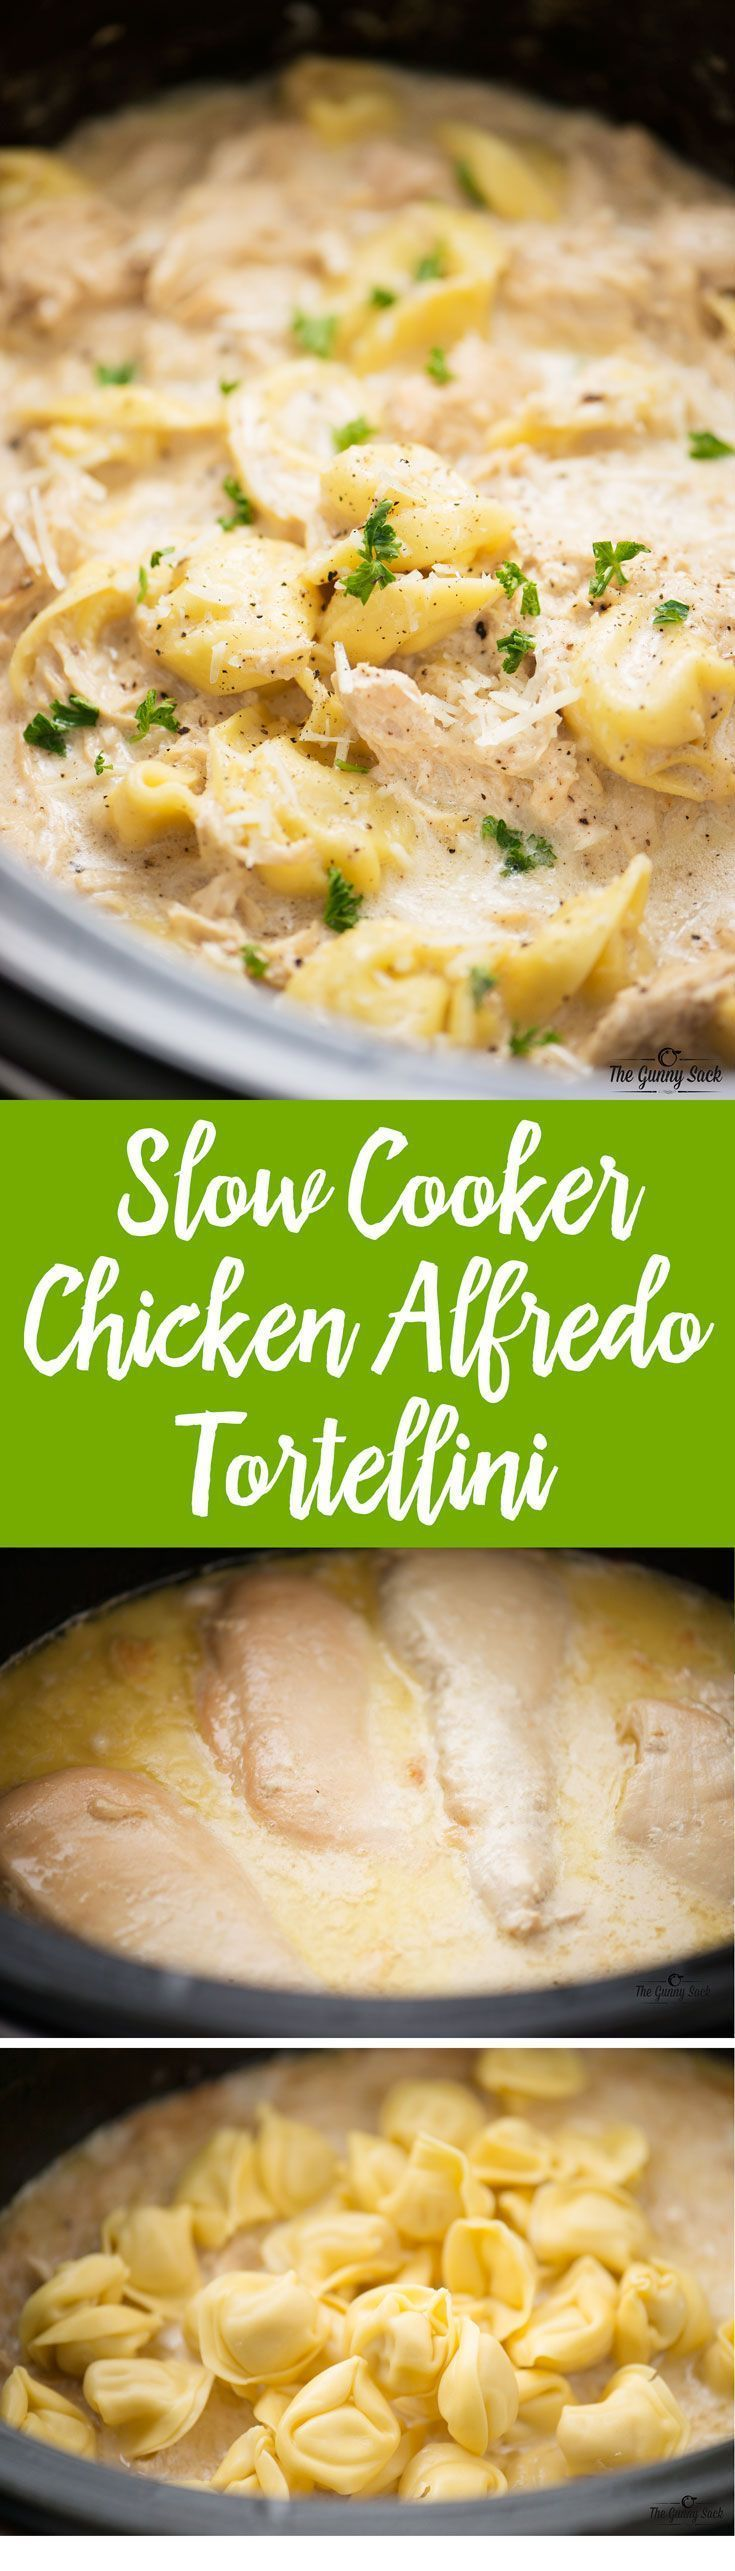 Slow Cooker Chicken Alfredo Tortellini is warm and comforting on a cold winter…